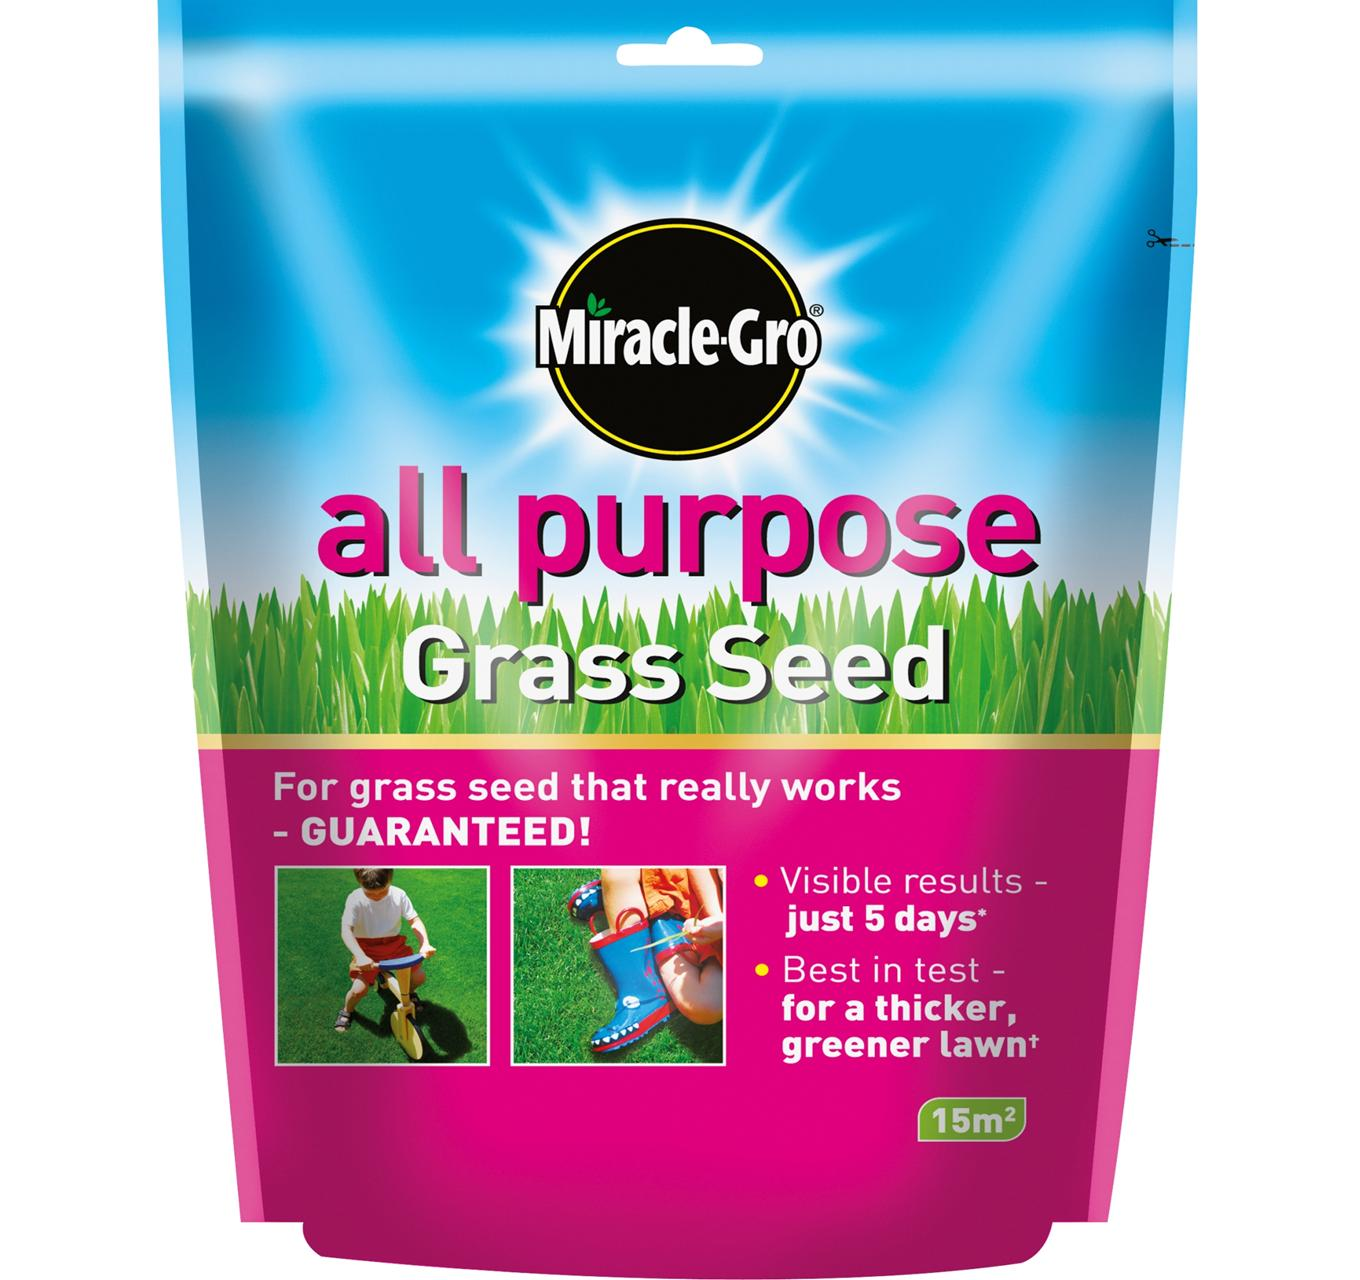 All Purpose Grass Seed 15m2